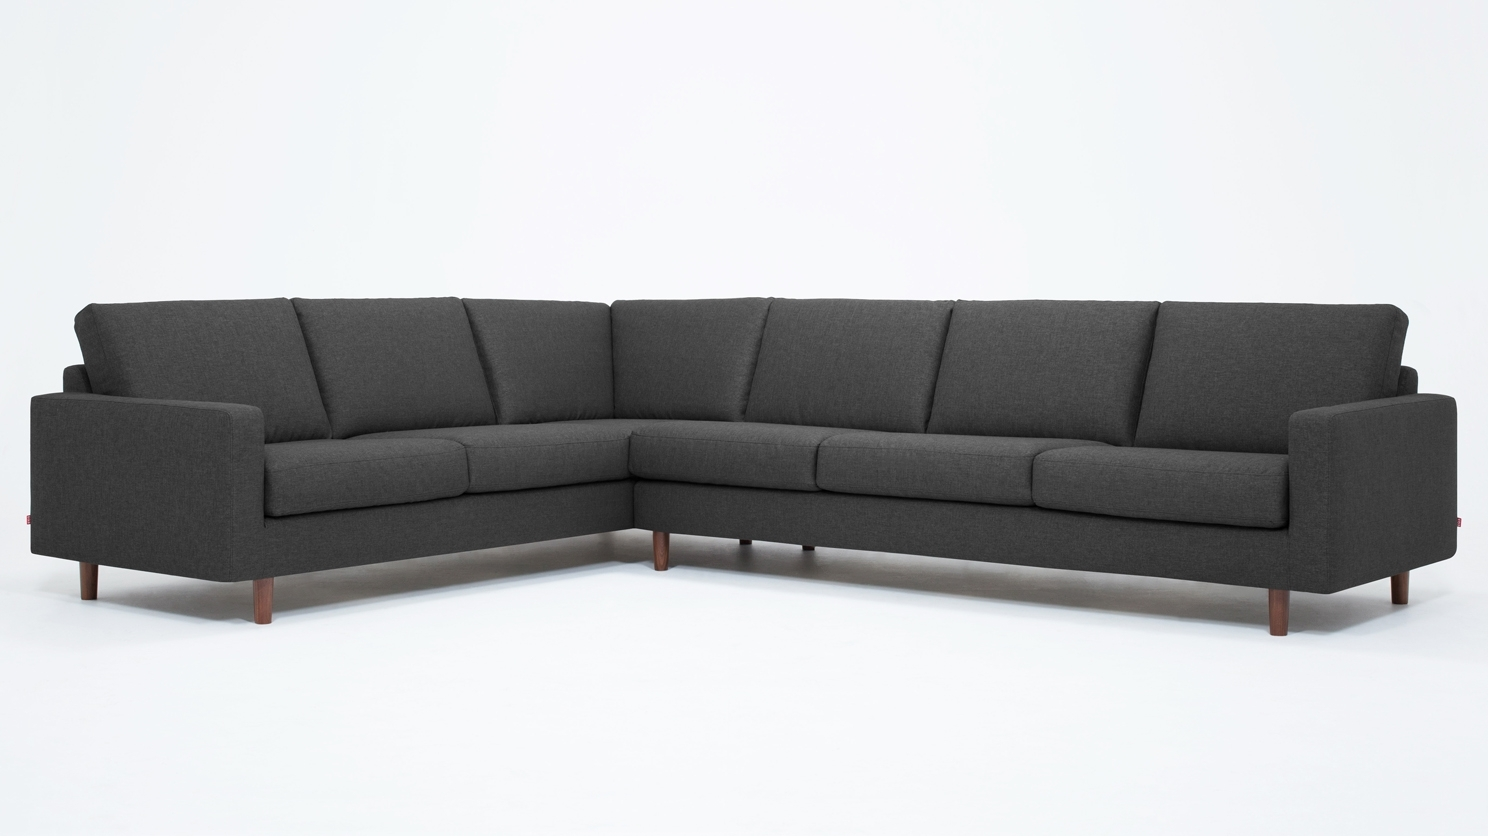 Eq3 | Oskar 2 Piece Sectional Sofa – Fabric With Regard To Eq3 Sectional Sofas (Image 7 of 10)